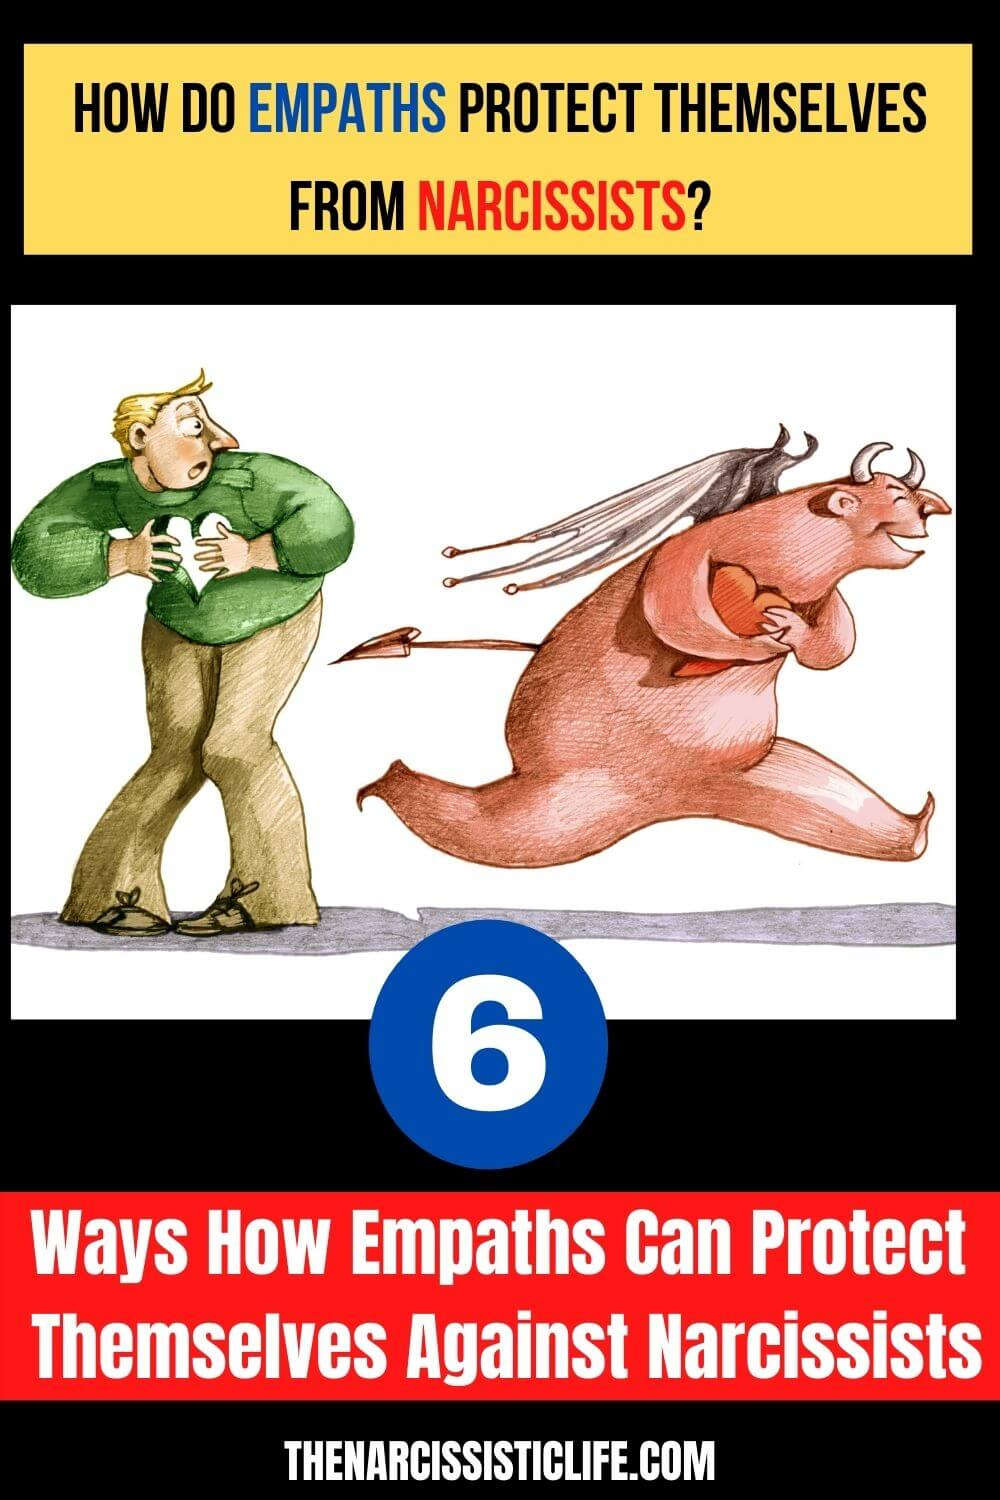 6 ways how empaths protect themselves against narcissists